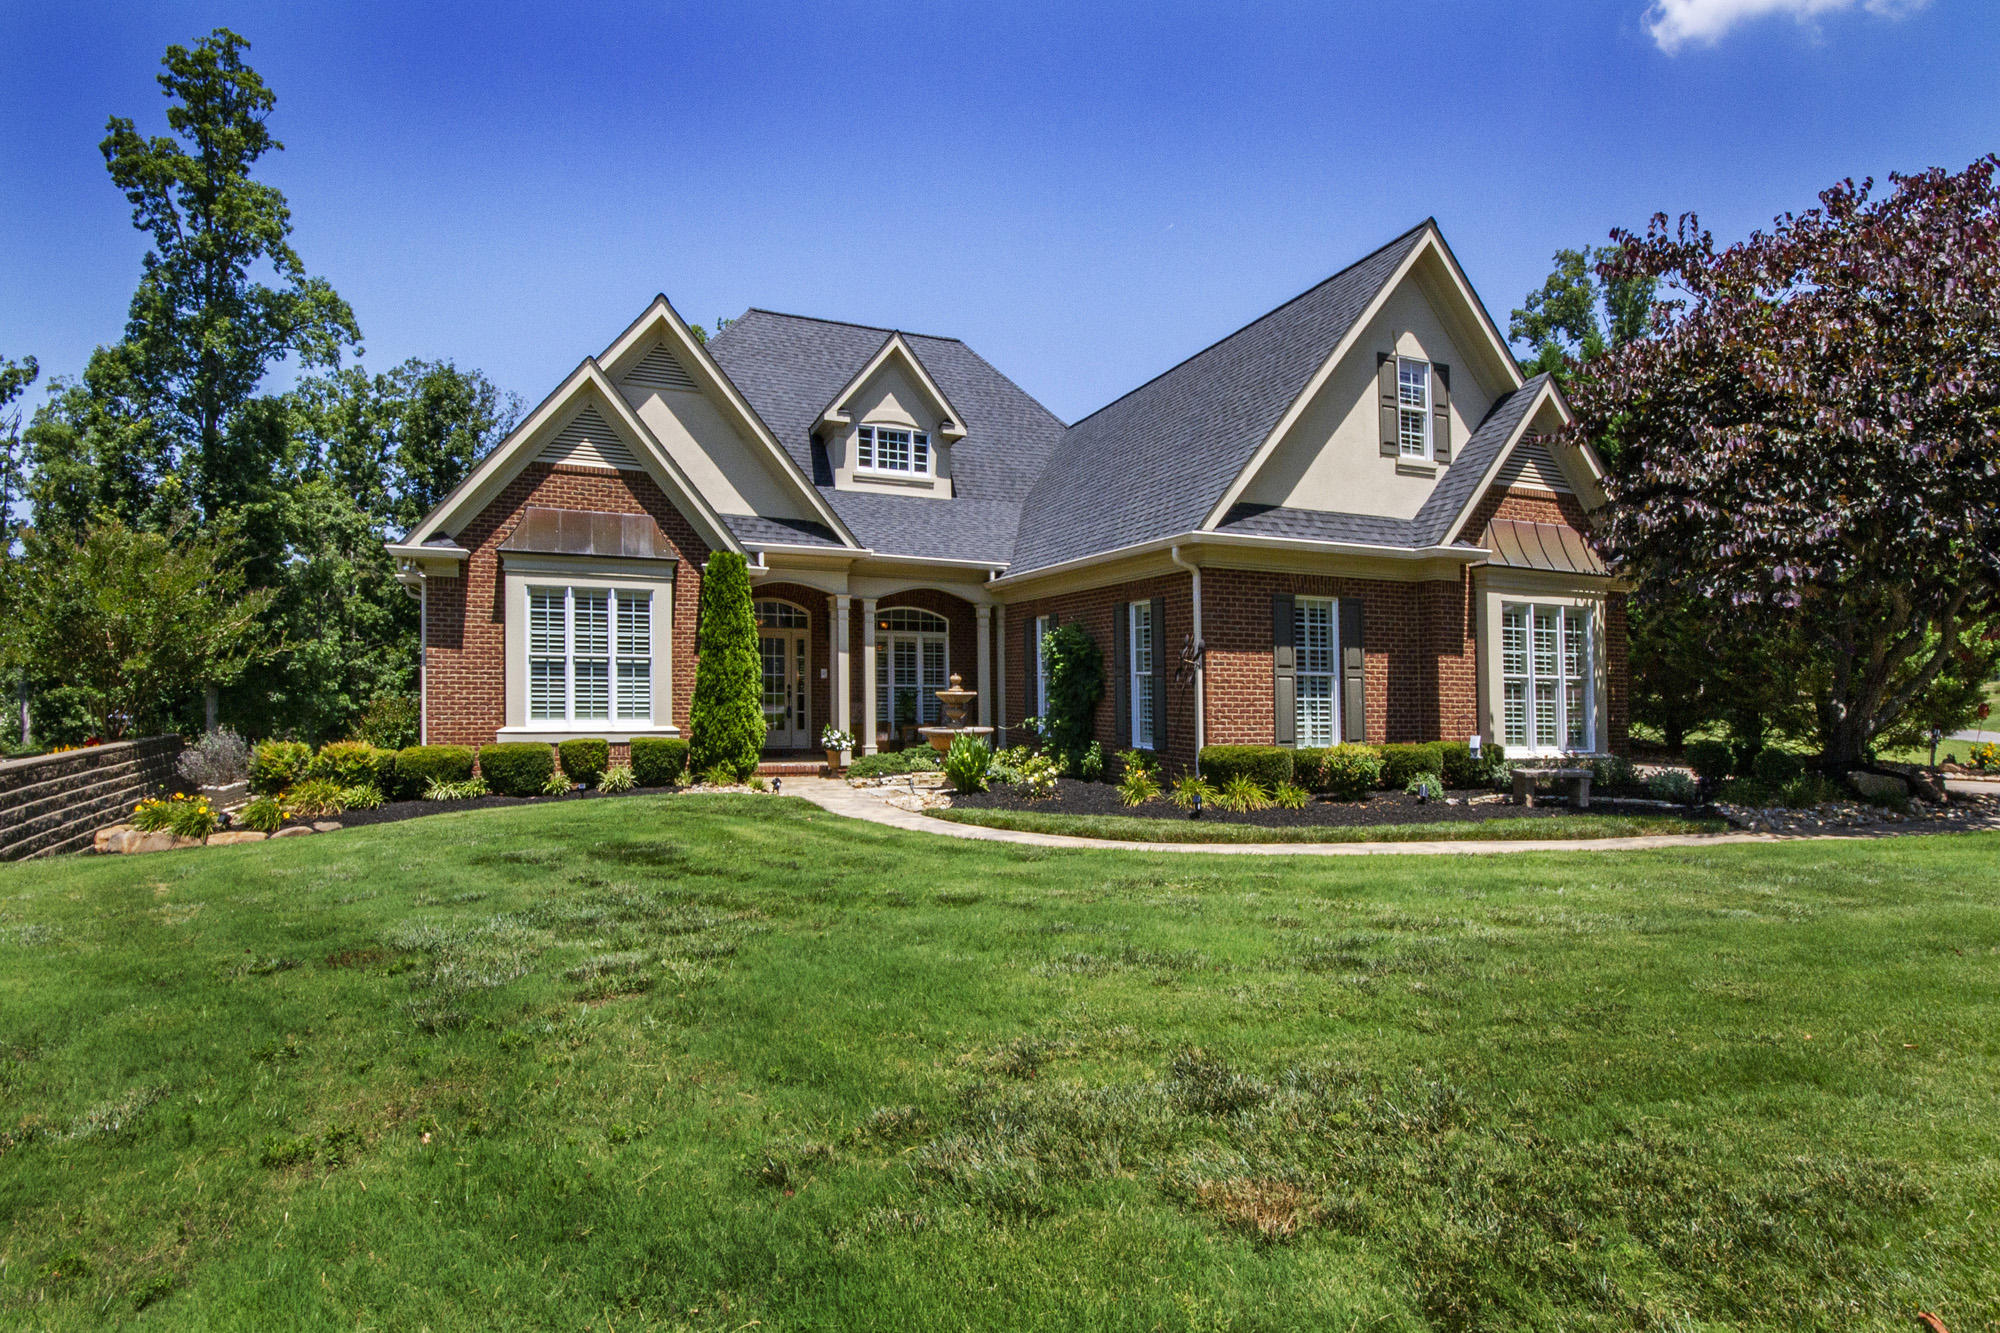 155 Skyview Drive, Lenoir City, Tennessee 37772, 4 Bedrooms Bedrooms, ,3 BathroomsBathrooms,Single Family,For Sale,Skyview,1122236